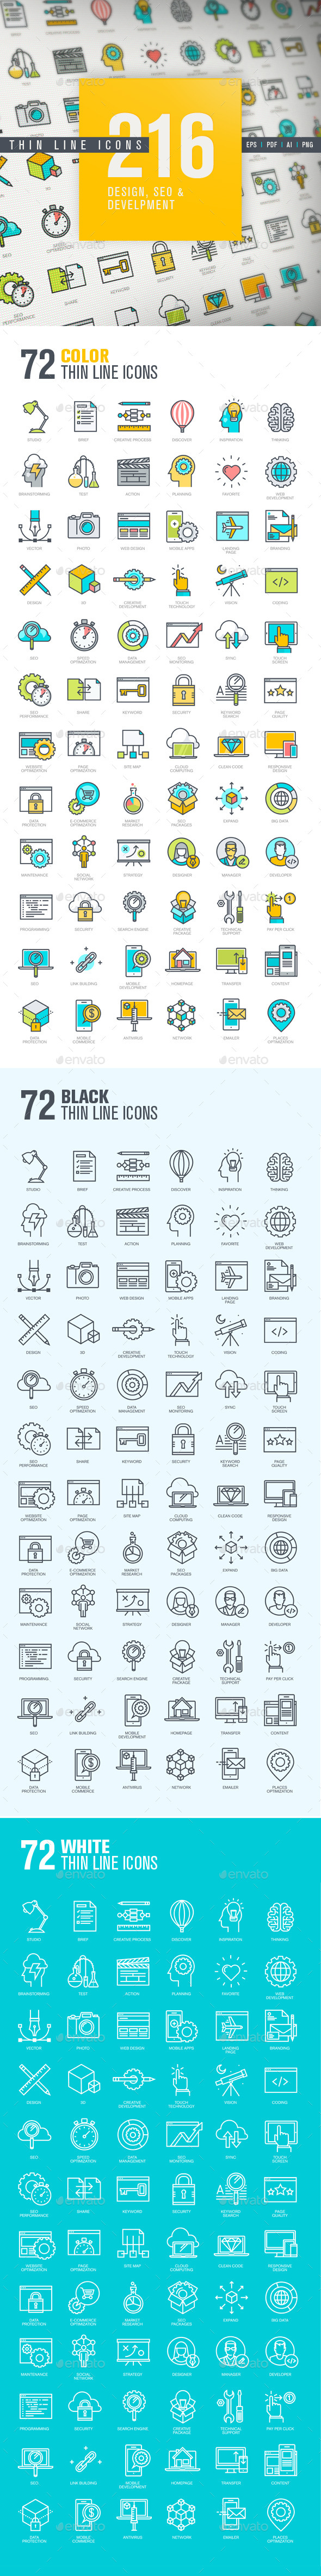 Thin Line Icons for Design, SEO and Development - Technology Icons